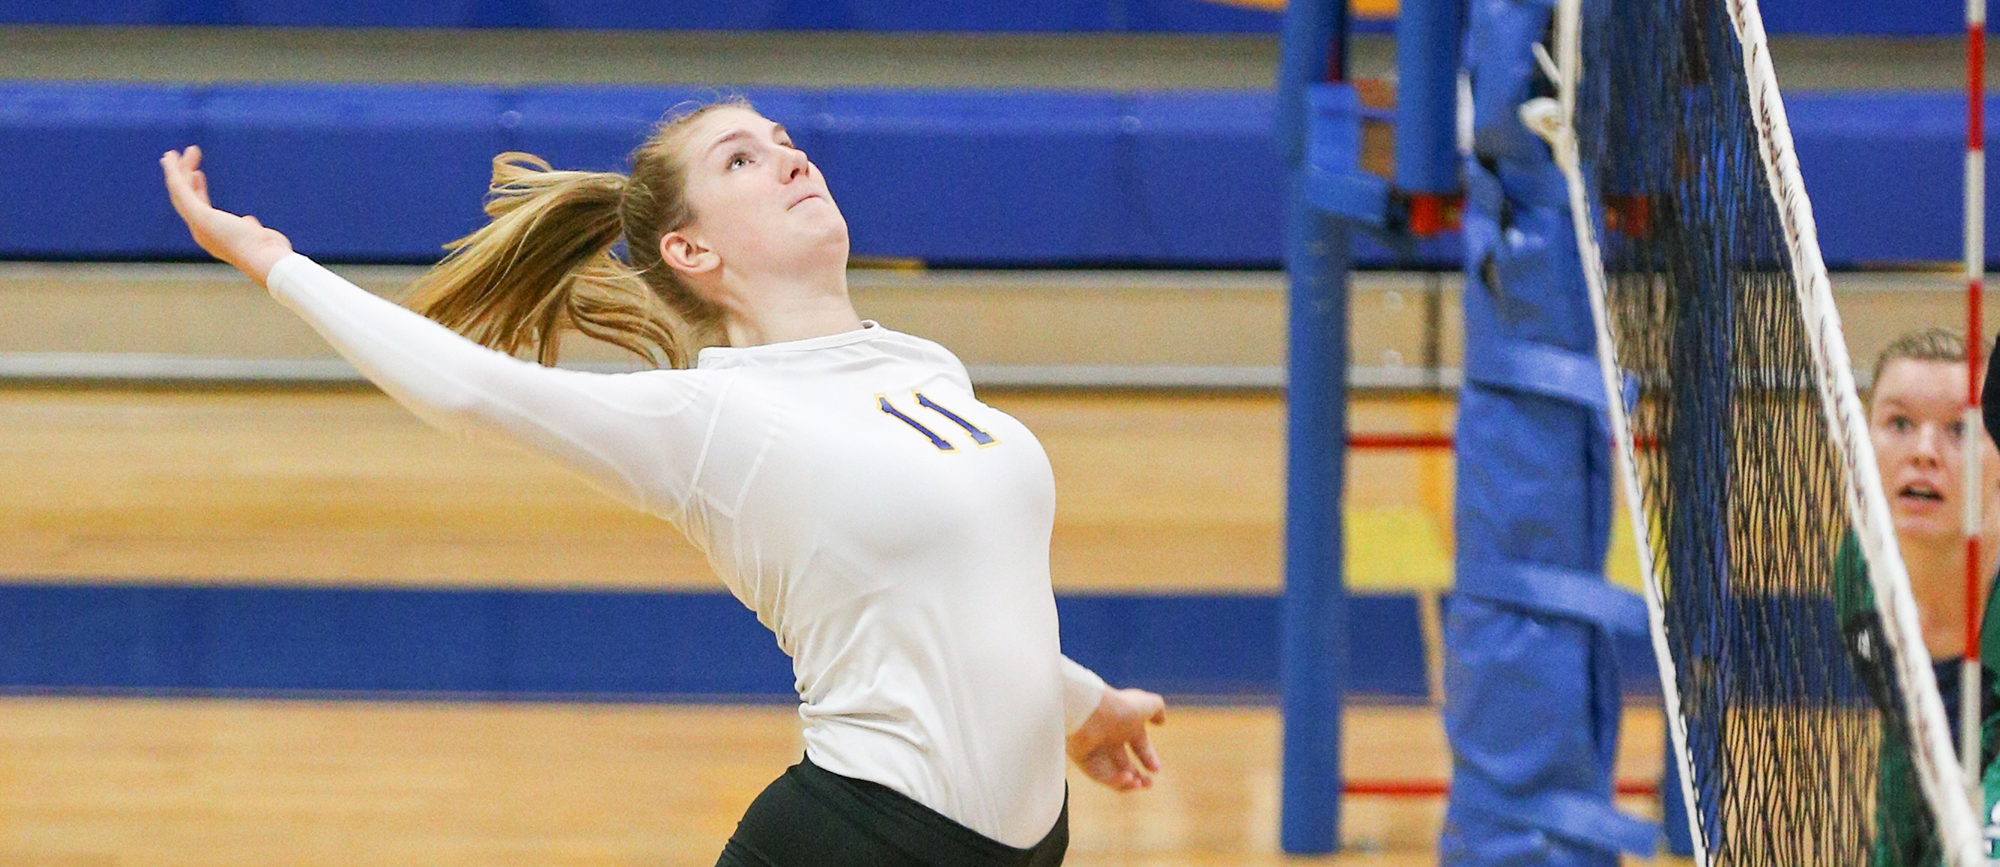 Junior Cassie Holmes recorded a team-high 14 kills in Western New England's five-set loss to Gordon on Tuesday. (Photo by Chris Marion)